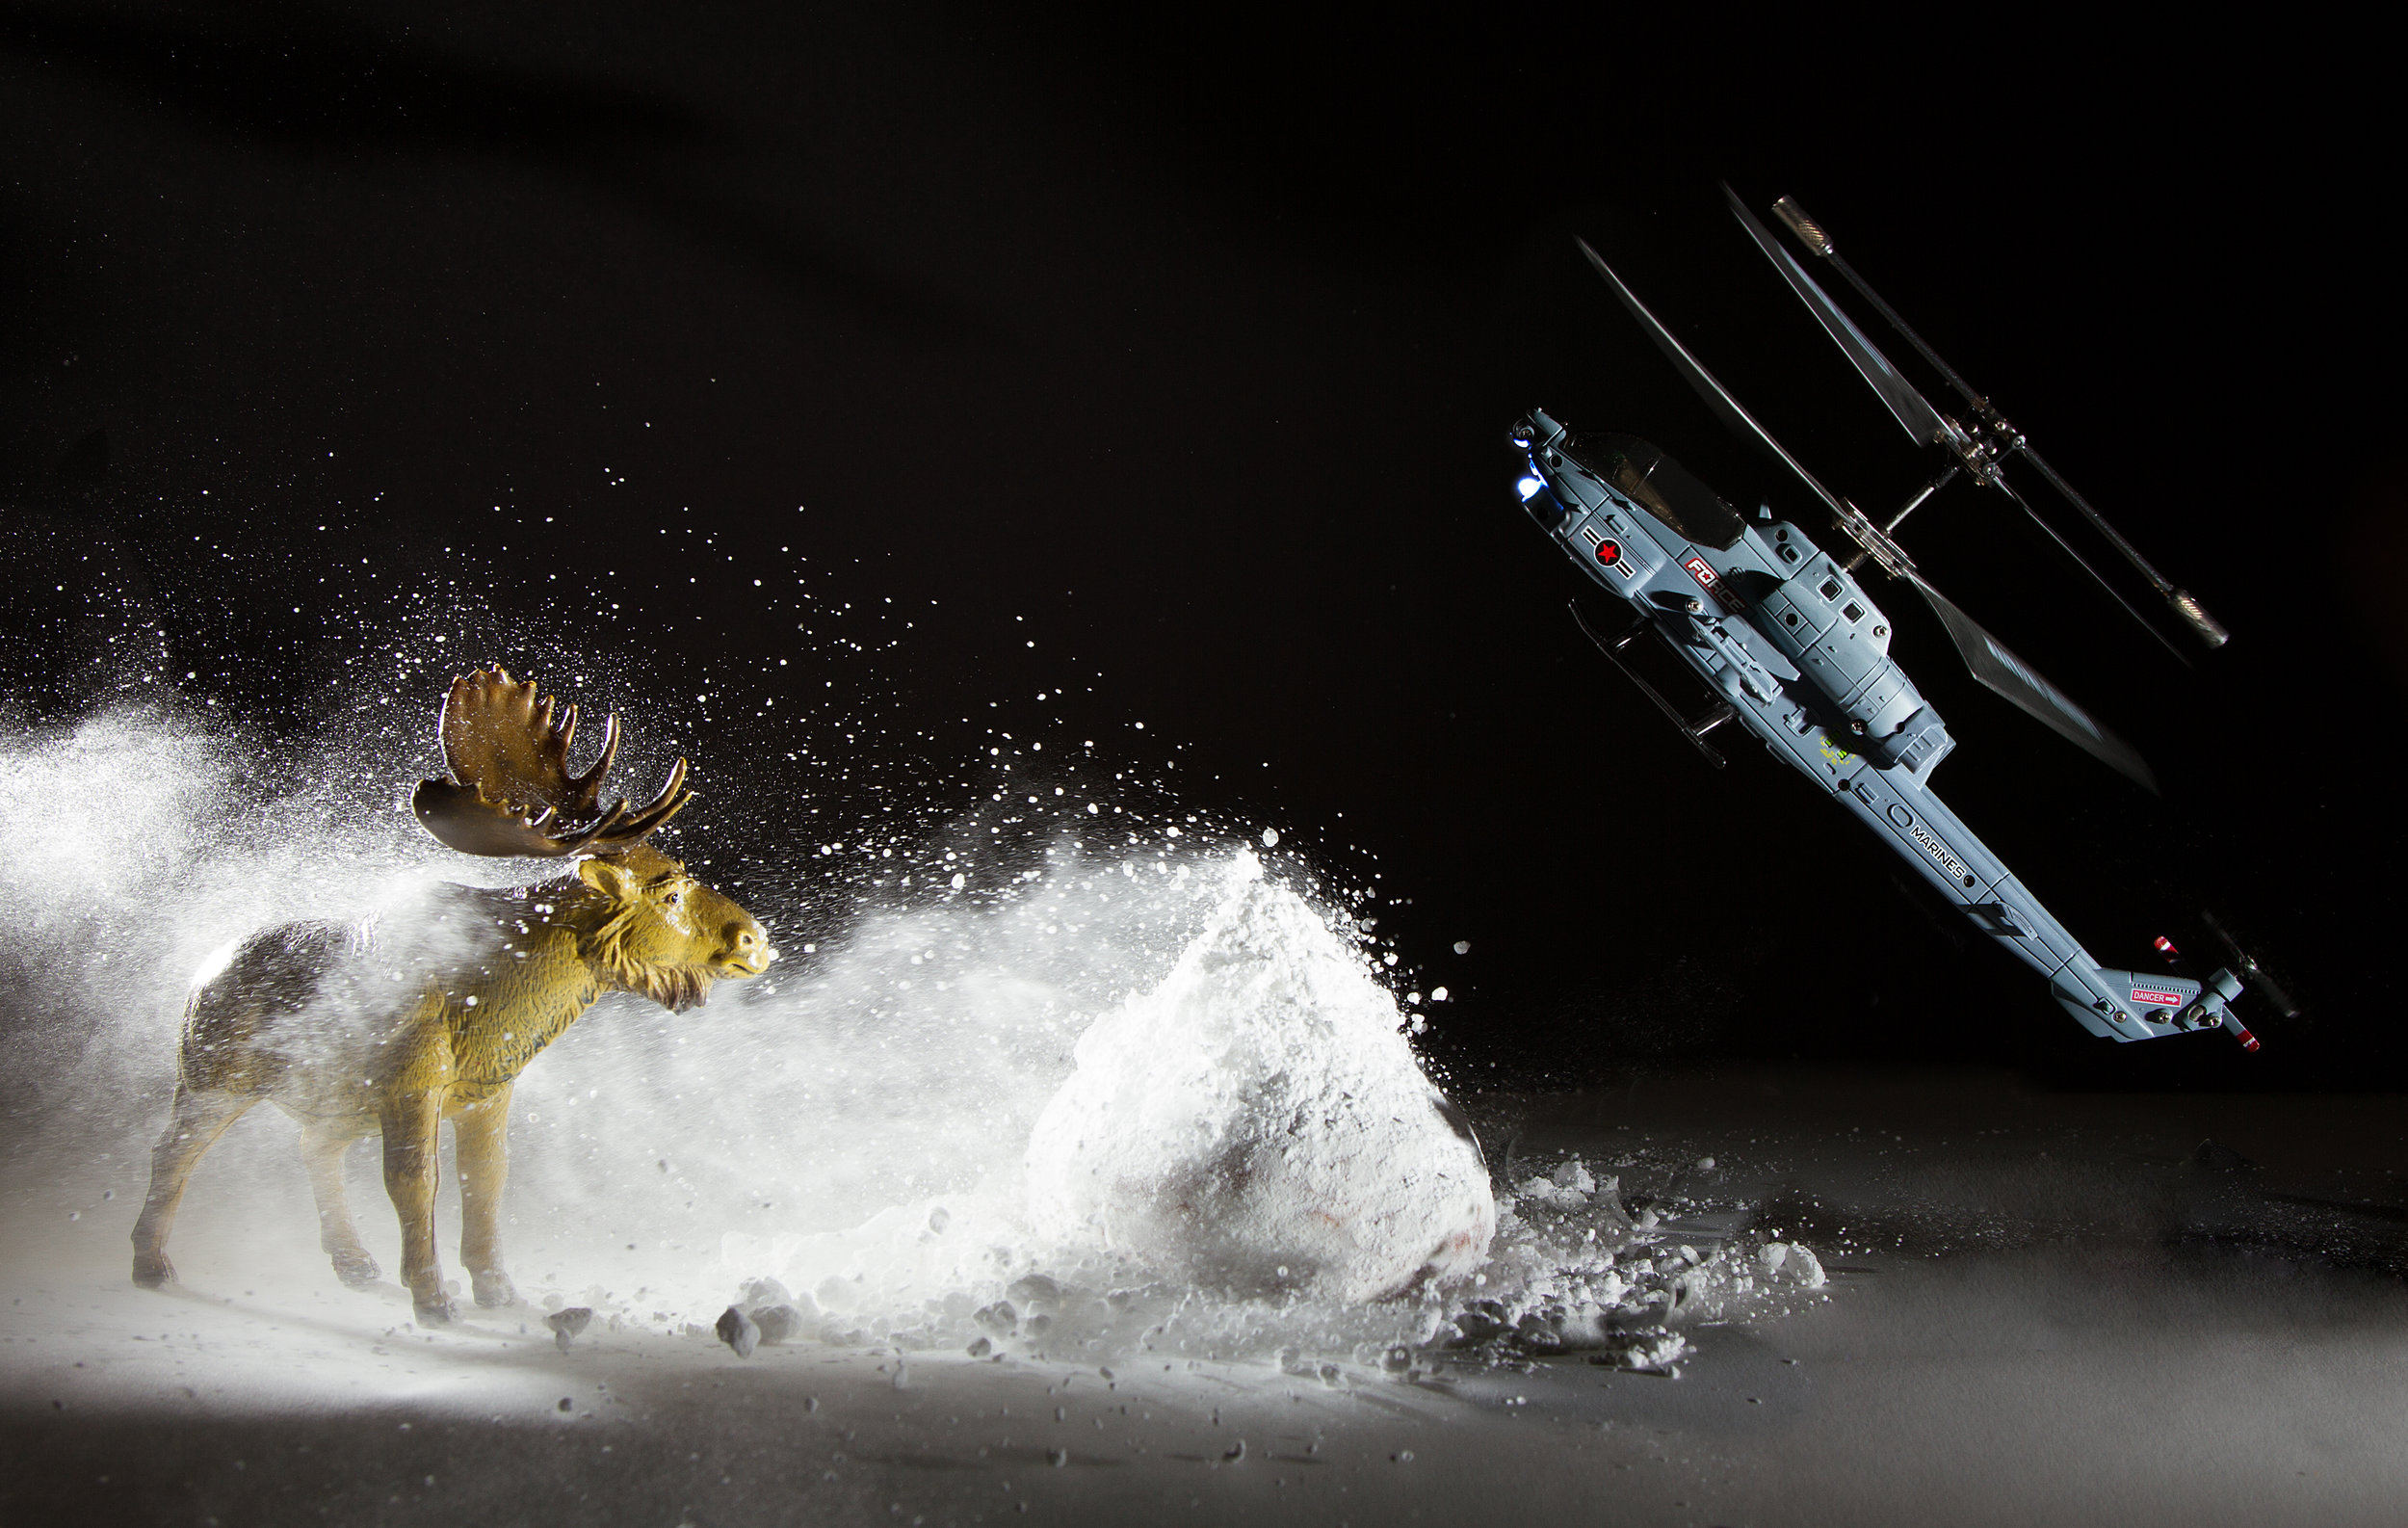 Moose and Helicopter in Snowstorm